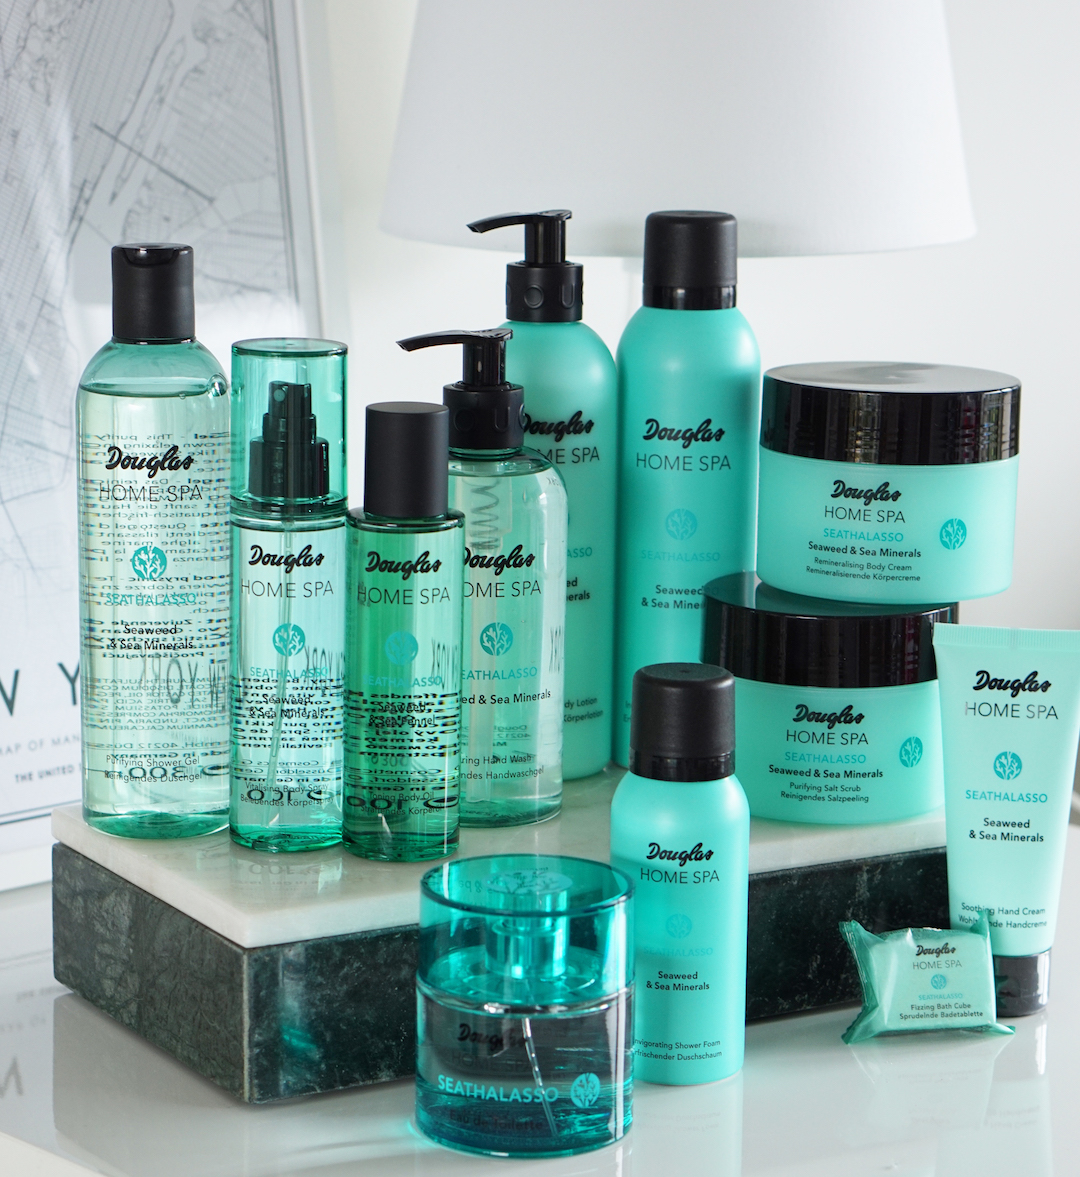 Douglas Home Spa Seathalasso